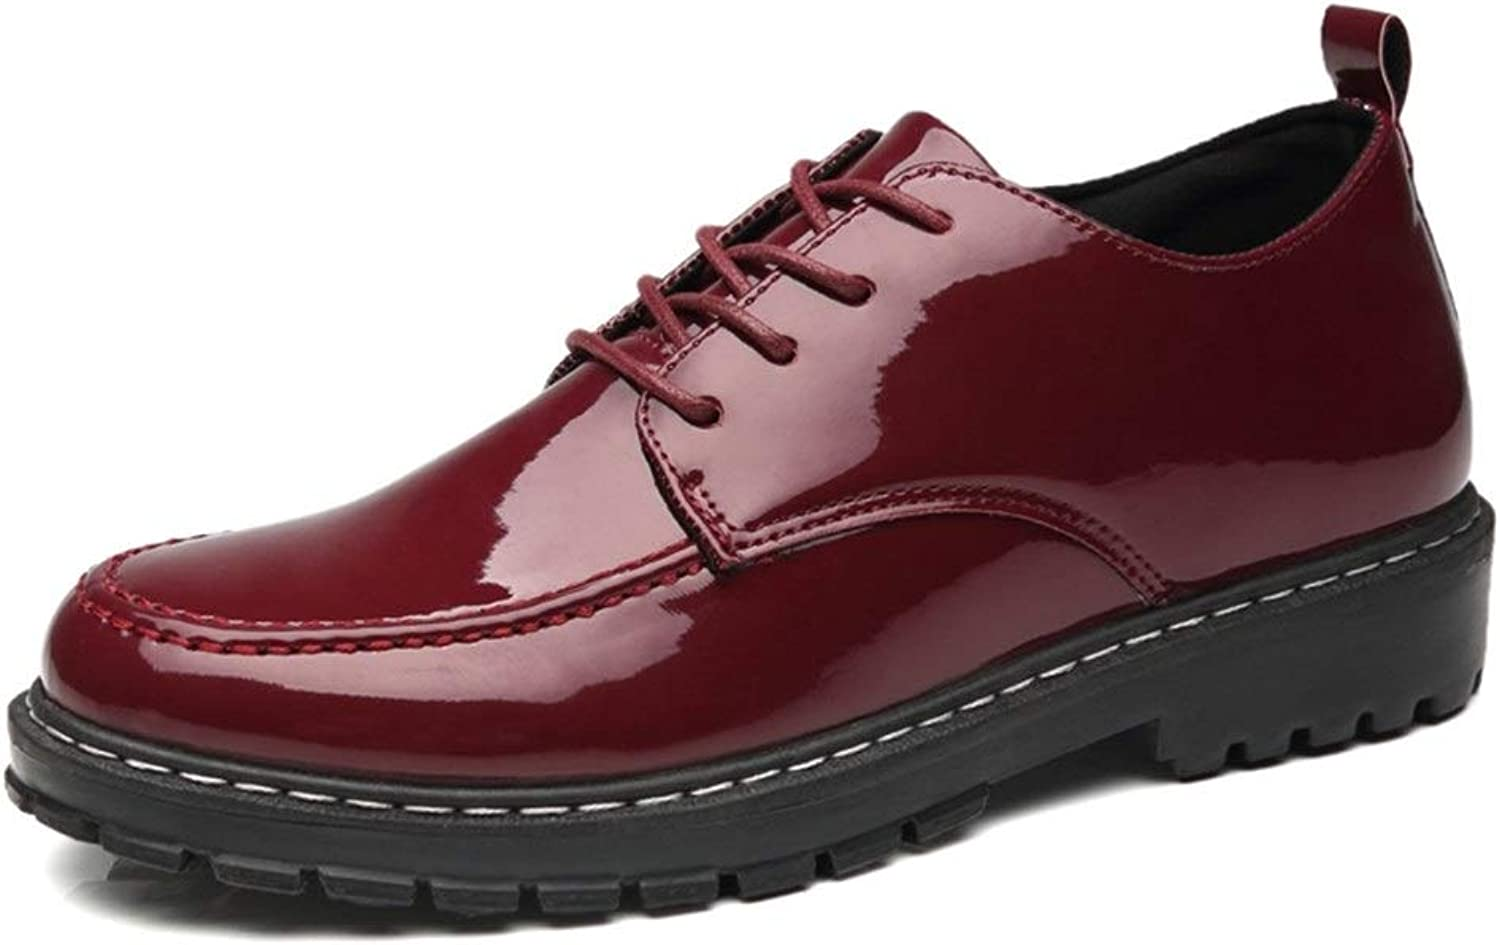 Ino Oxford shoes for Men Formal shoes Lace Up Style PU Leather Patent Leather Outsole Beat Toe Perfunctory Business